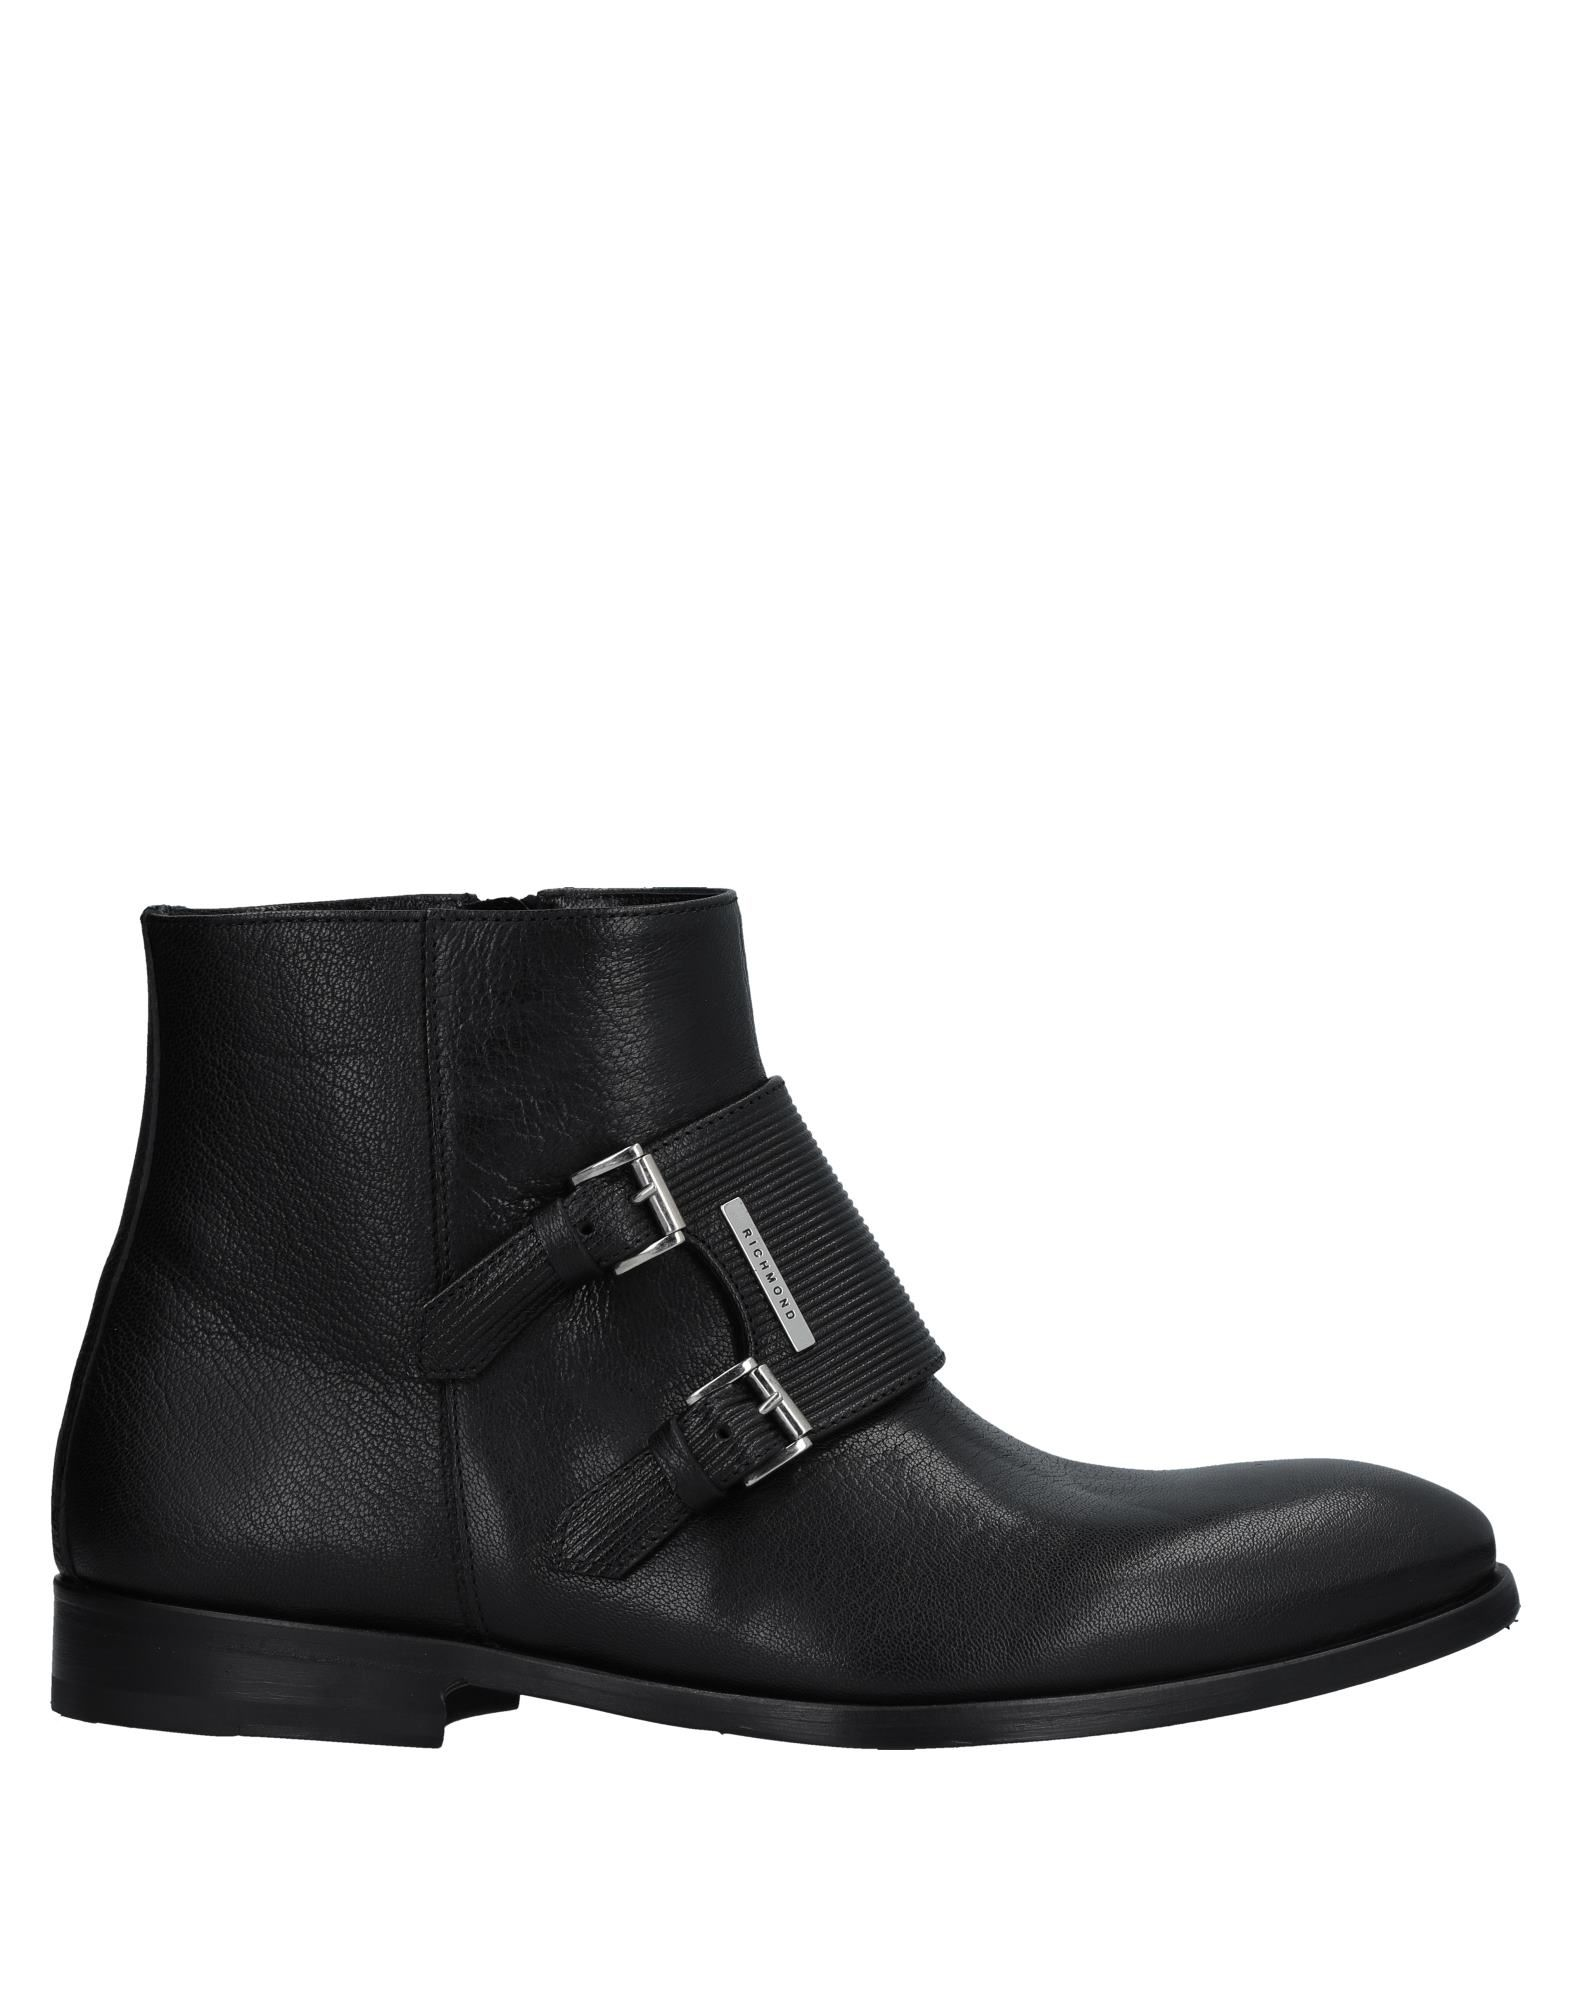 RICHMOND Boots in Black